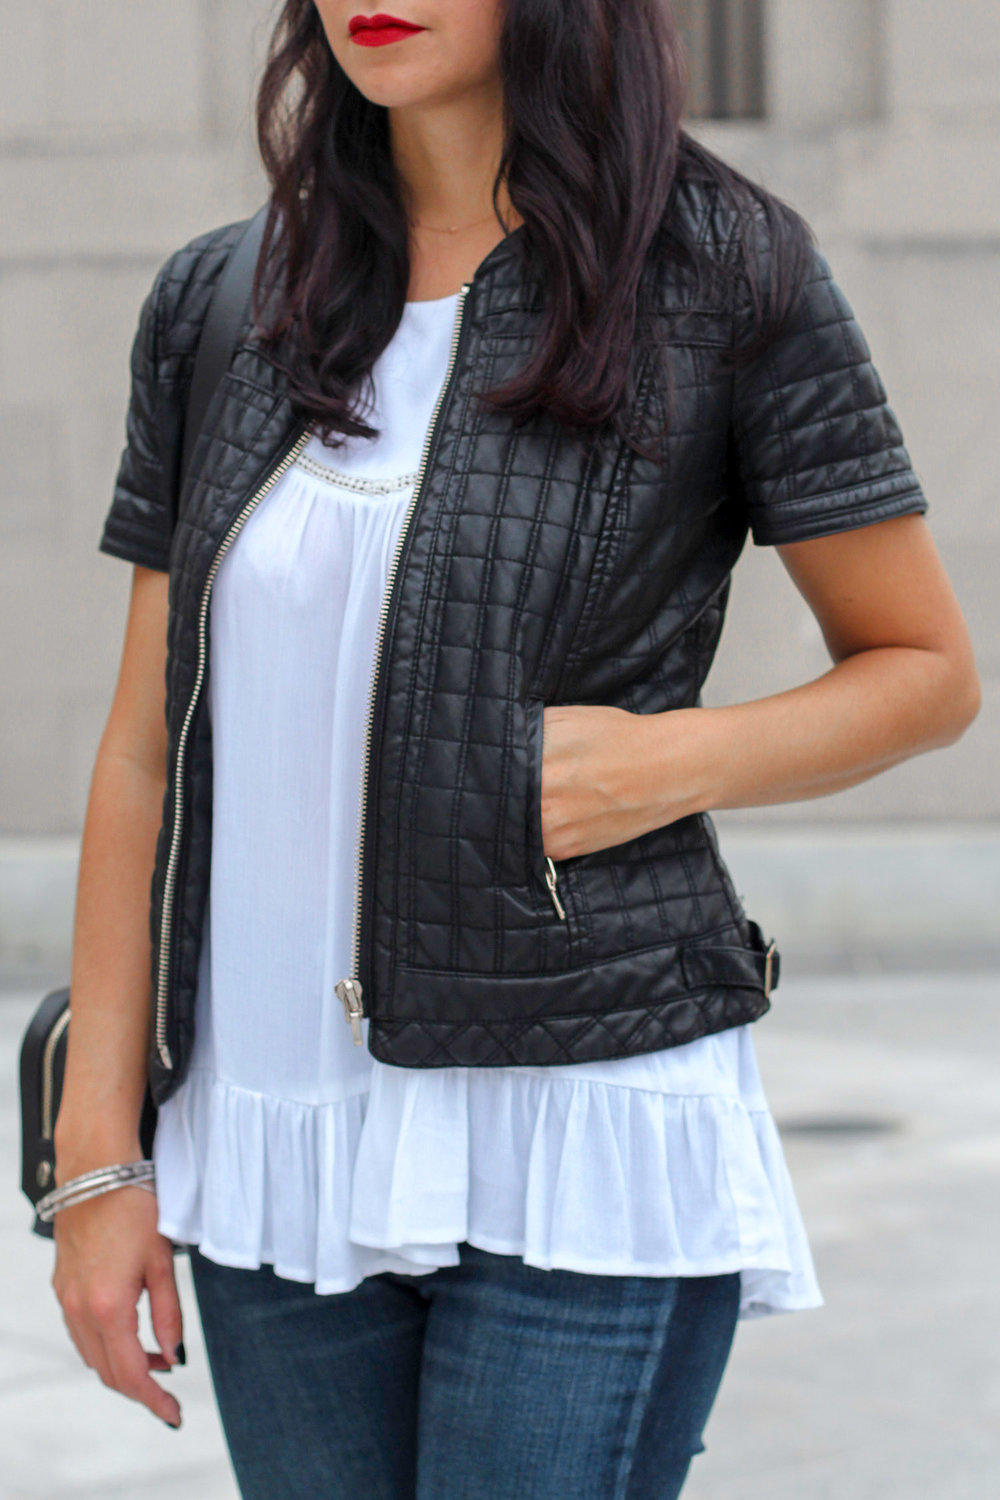 Faux Leather Jacket for Summer